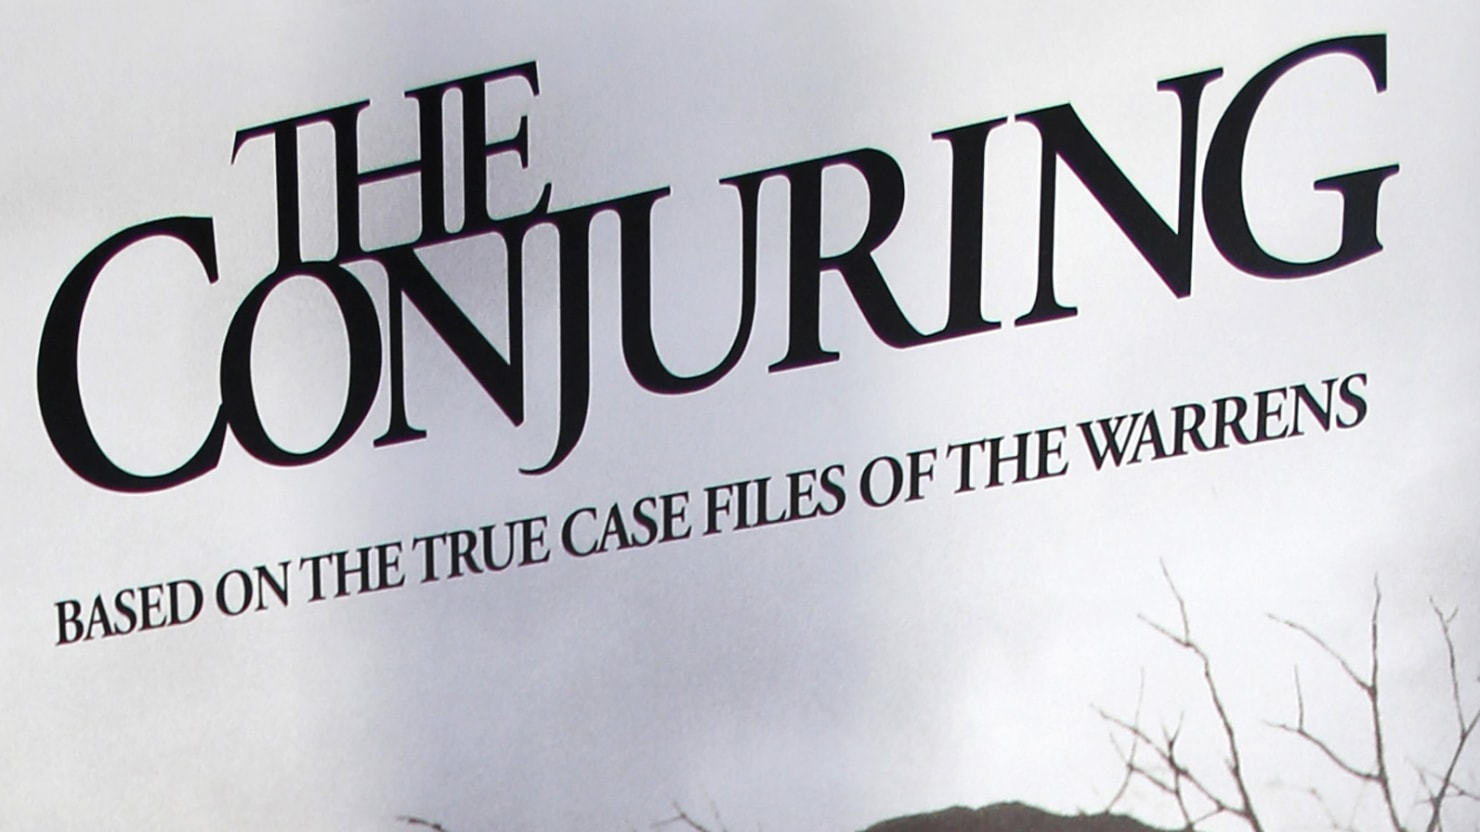 Lorraine Warren, Paranormal Investigator Who Inspired 'The Conjuring' Series, Dies at 92